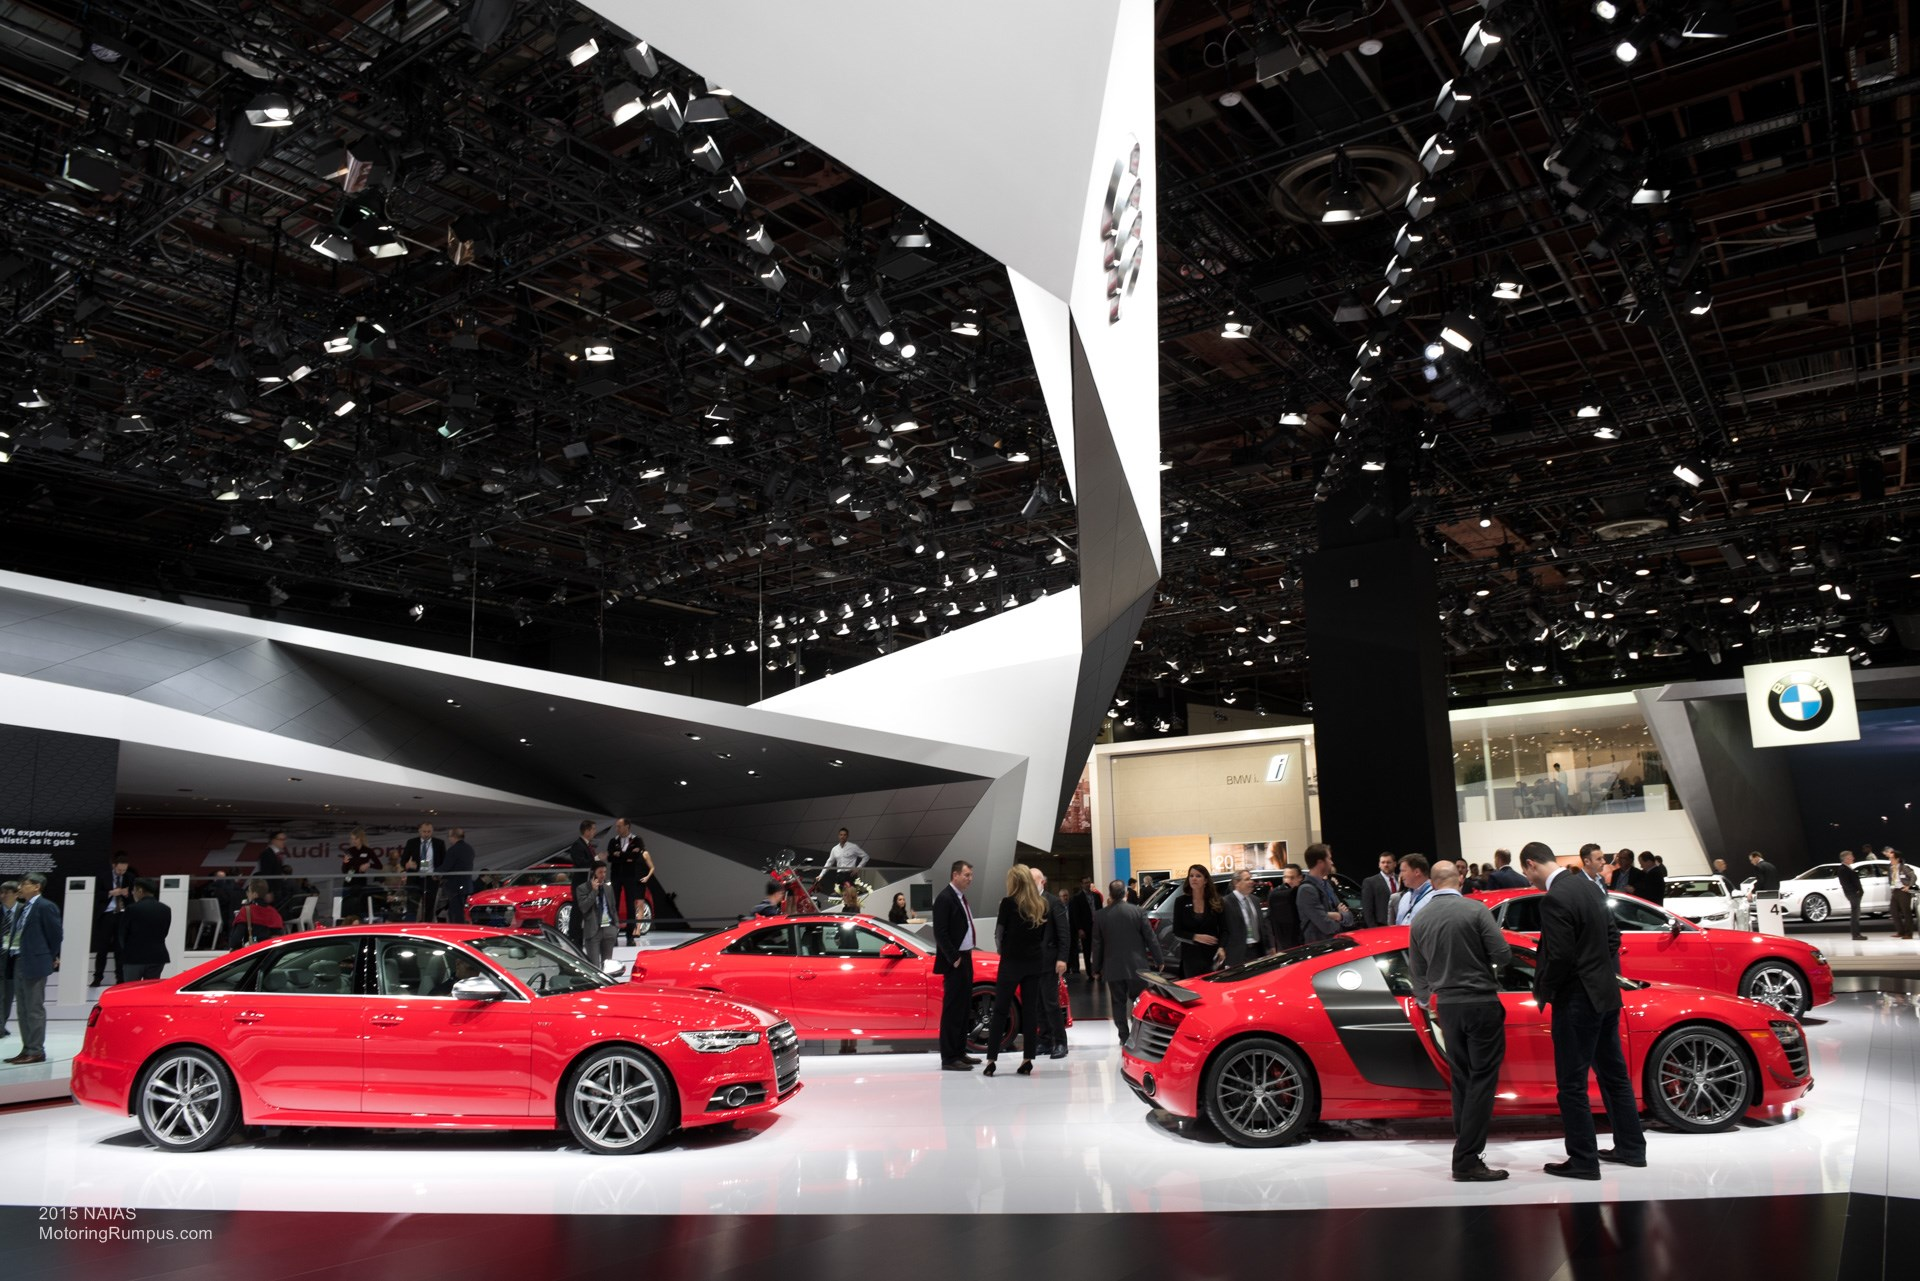 2015 NAIAS Audi Red